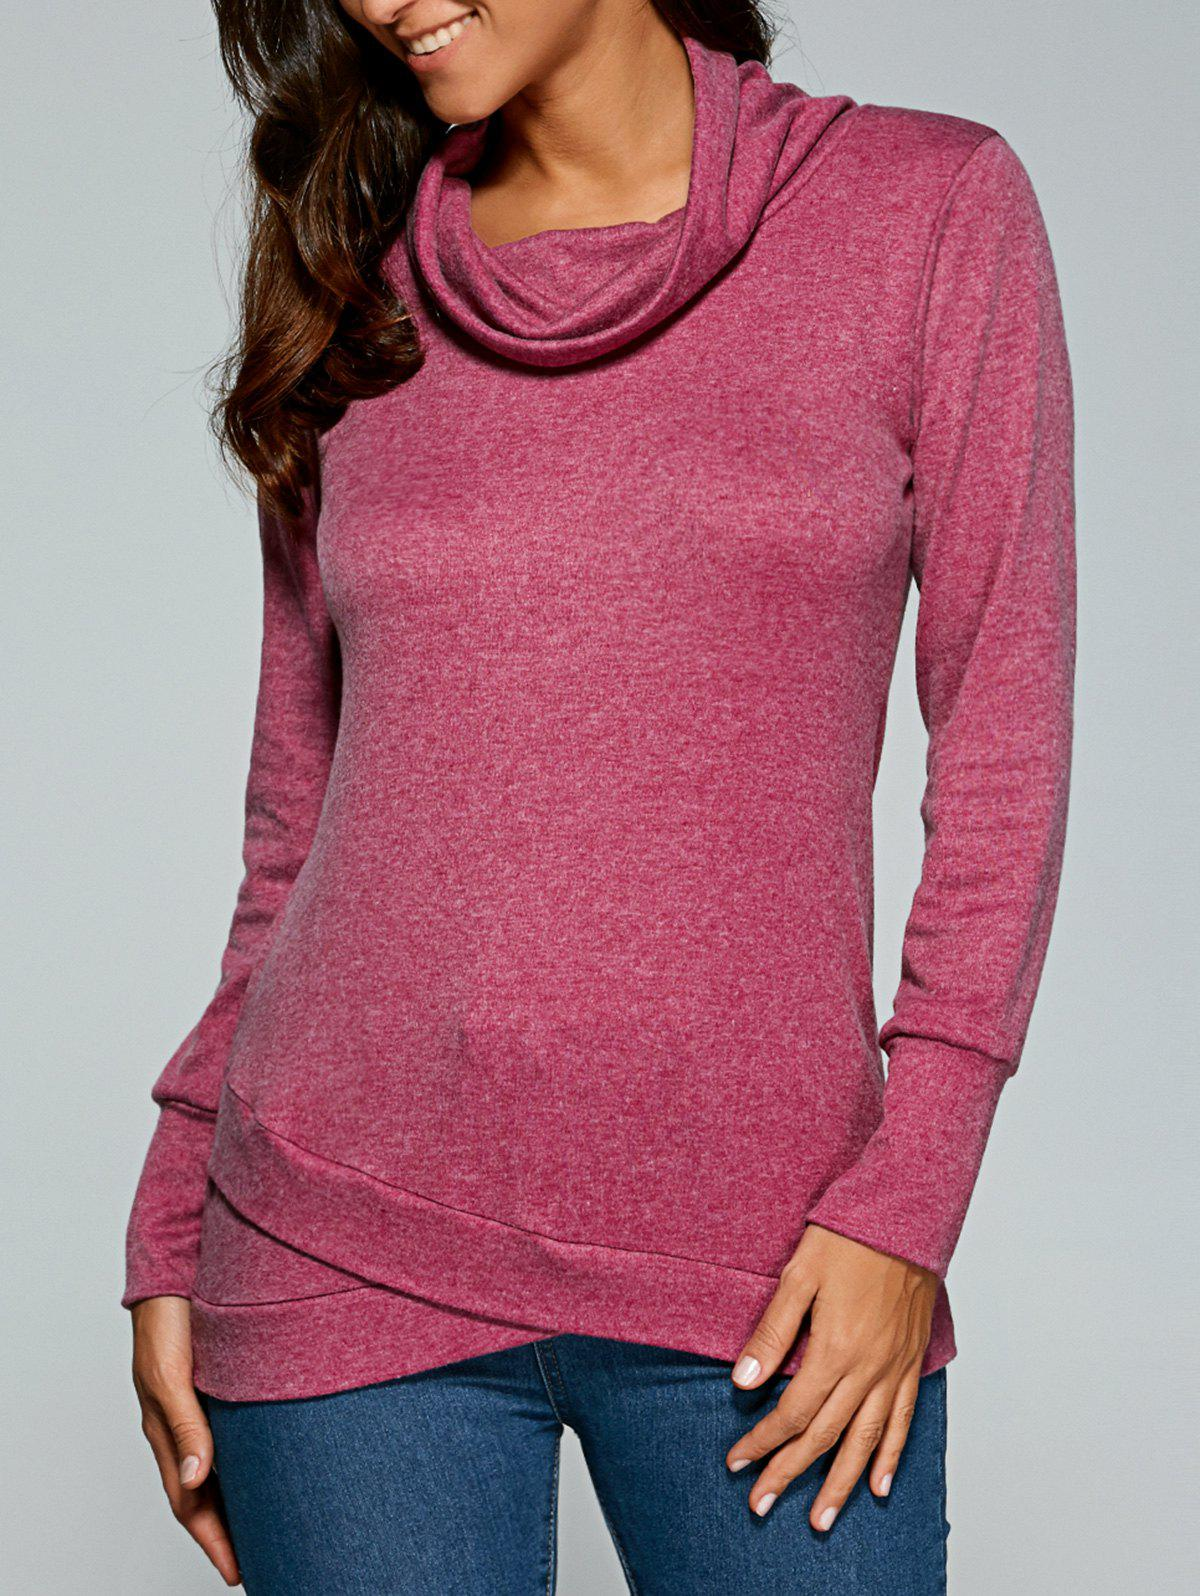 Cowl Neck Pullover Sweatshirt - PURPLISH RED L